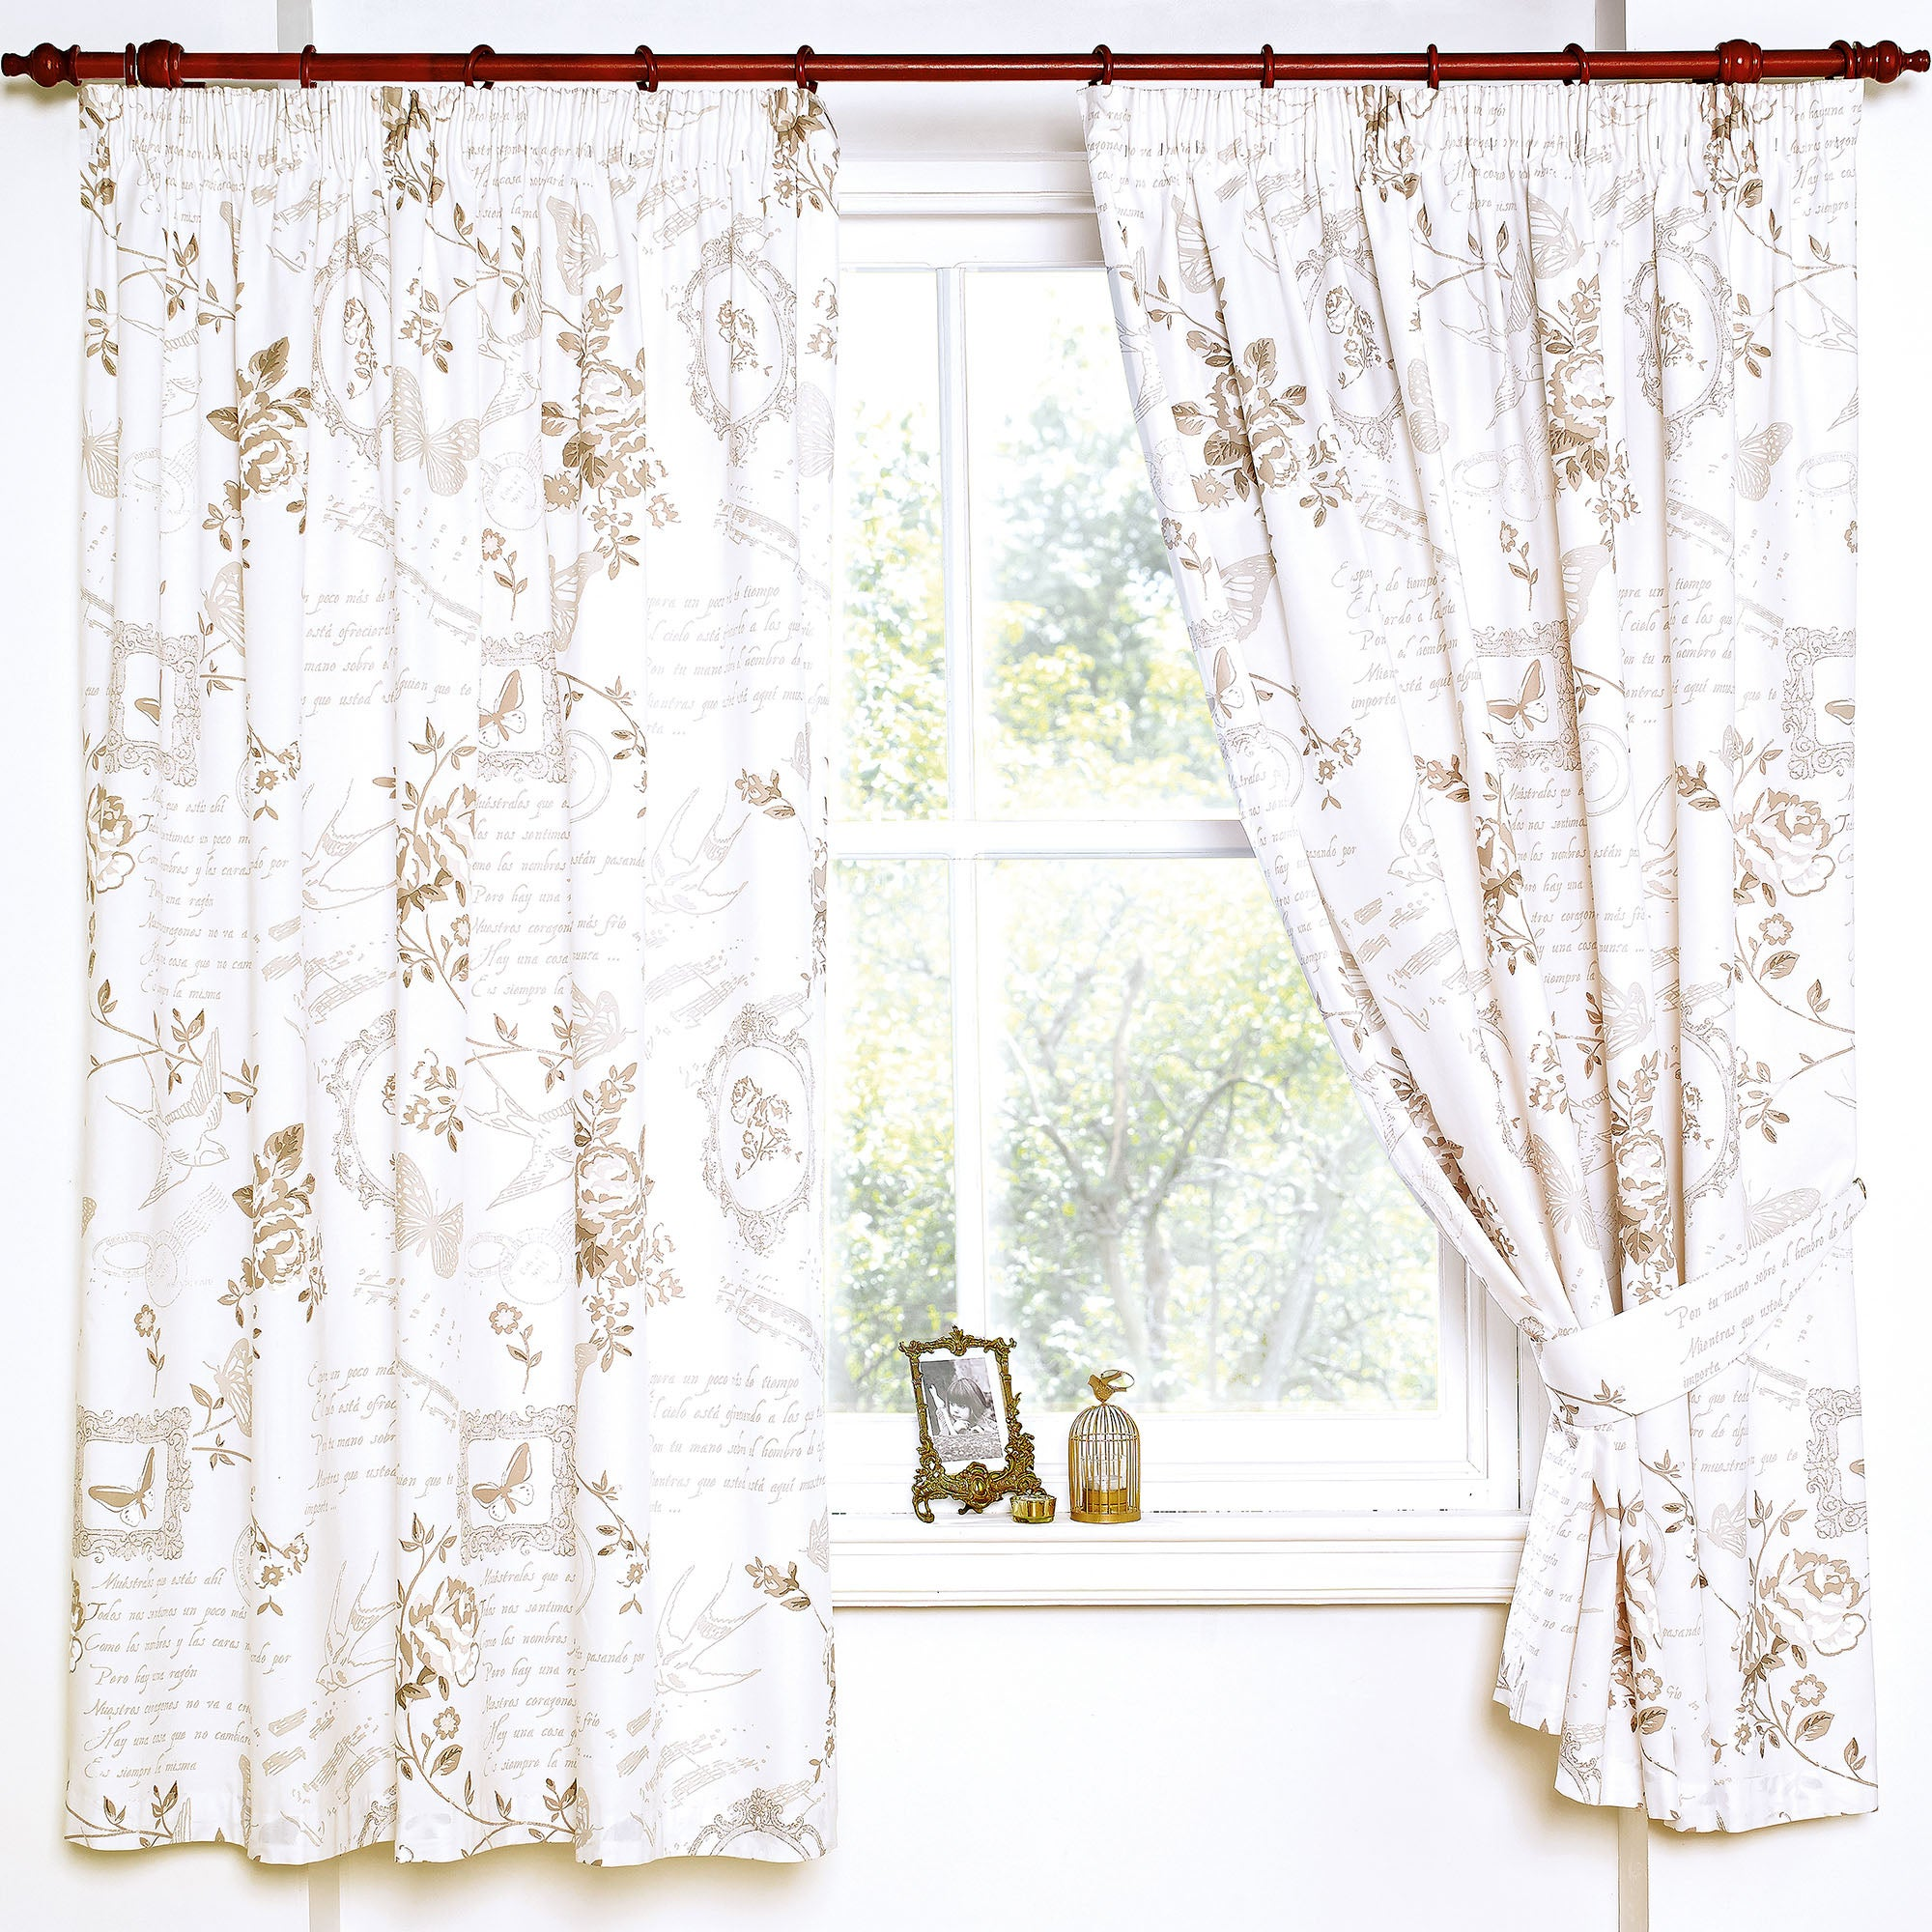 Latte Nostalgic Bluebird Thermal Pencil Pleat Curtains